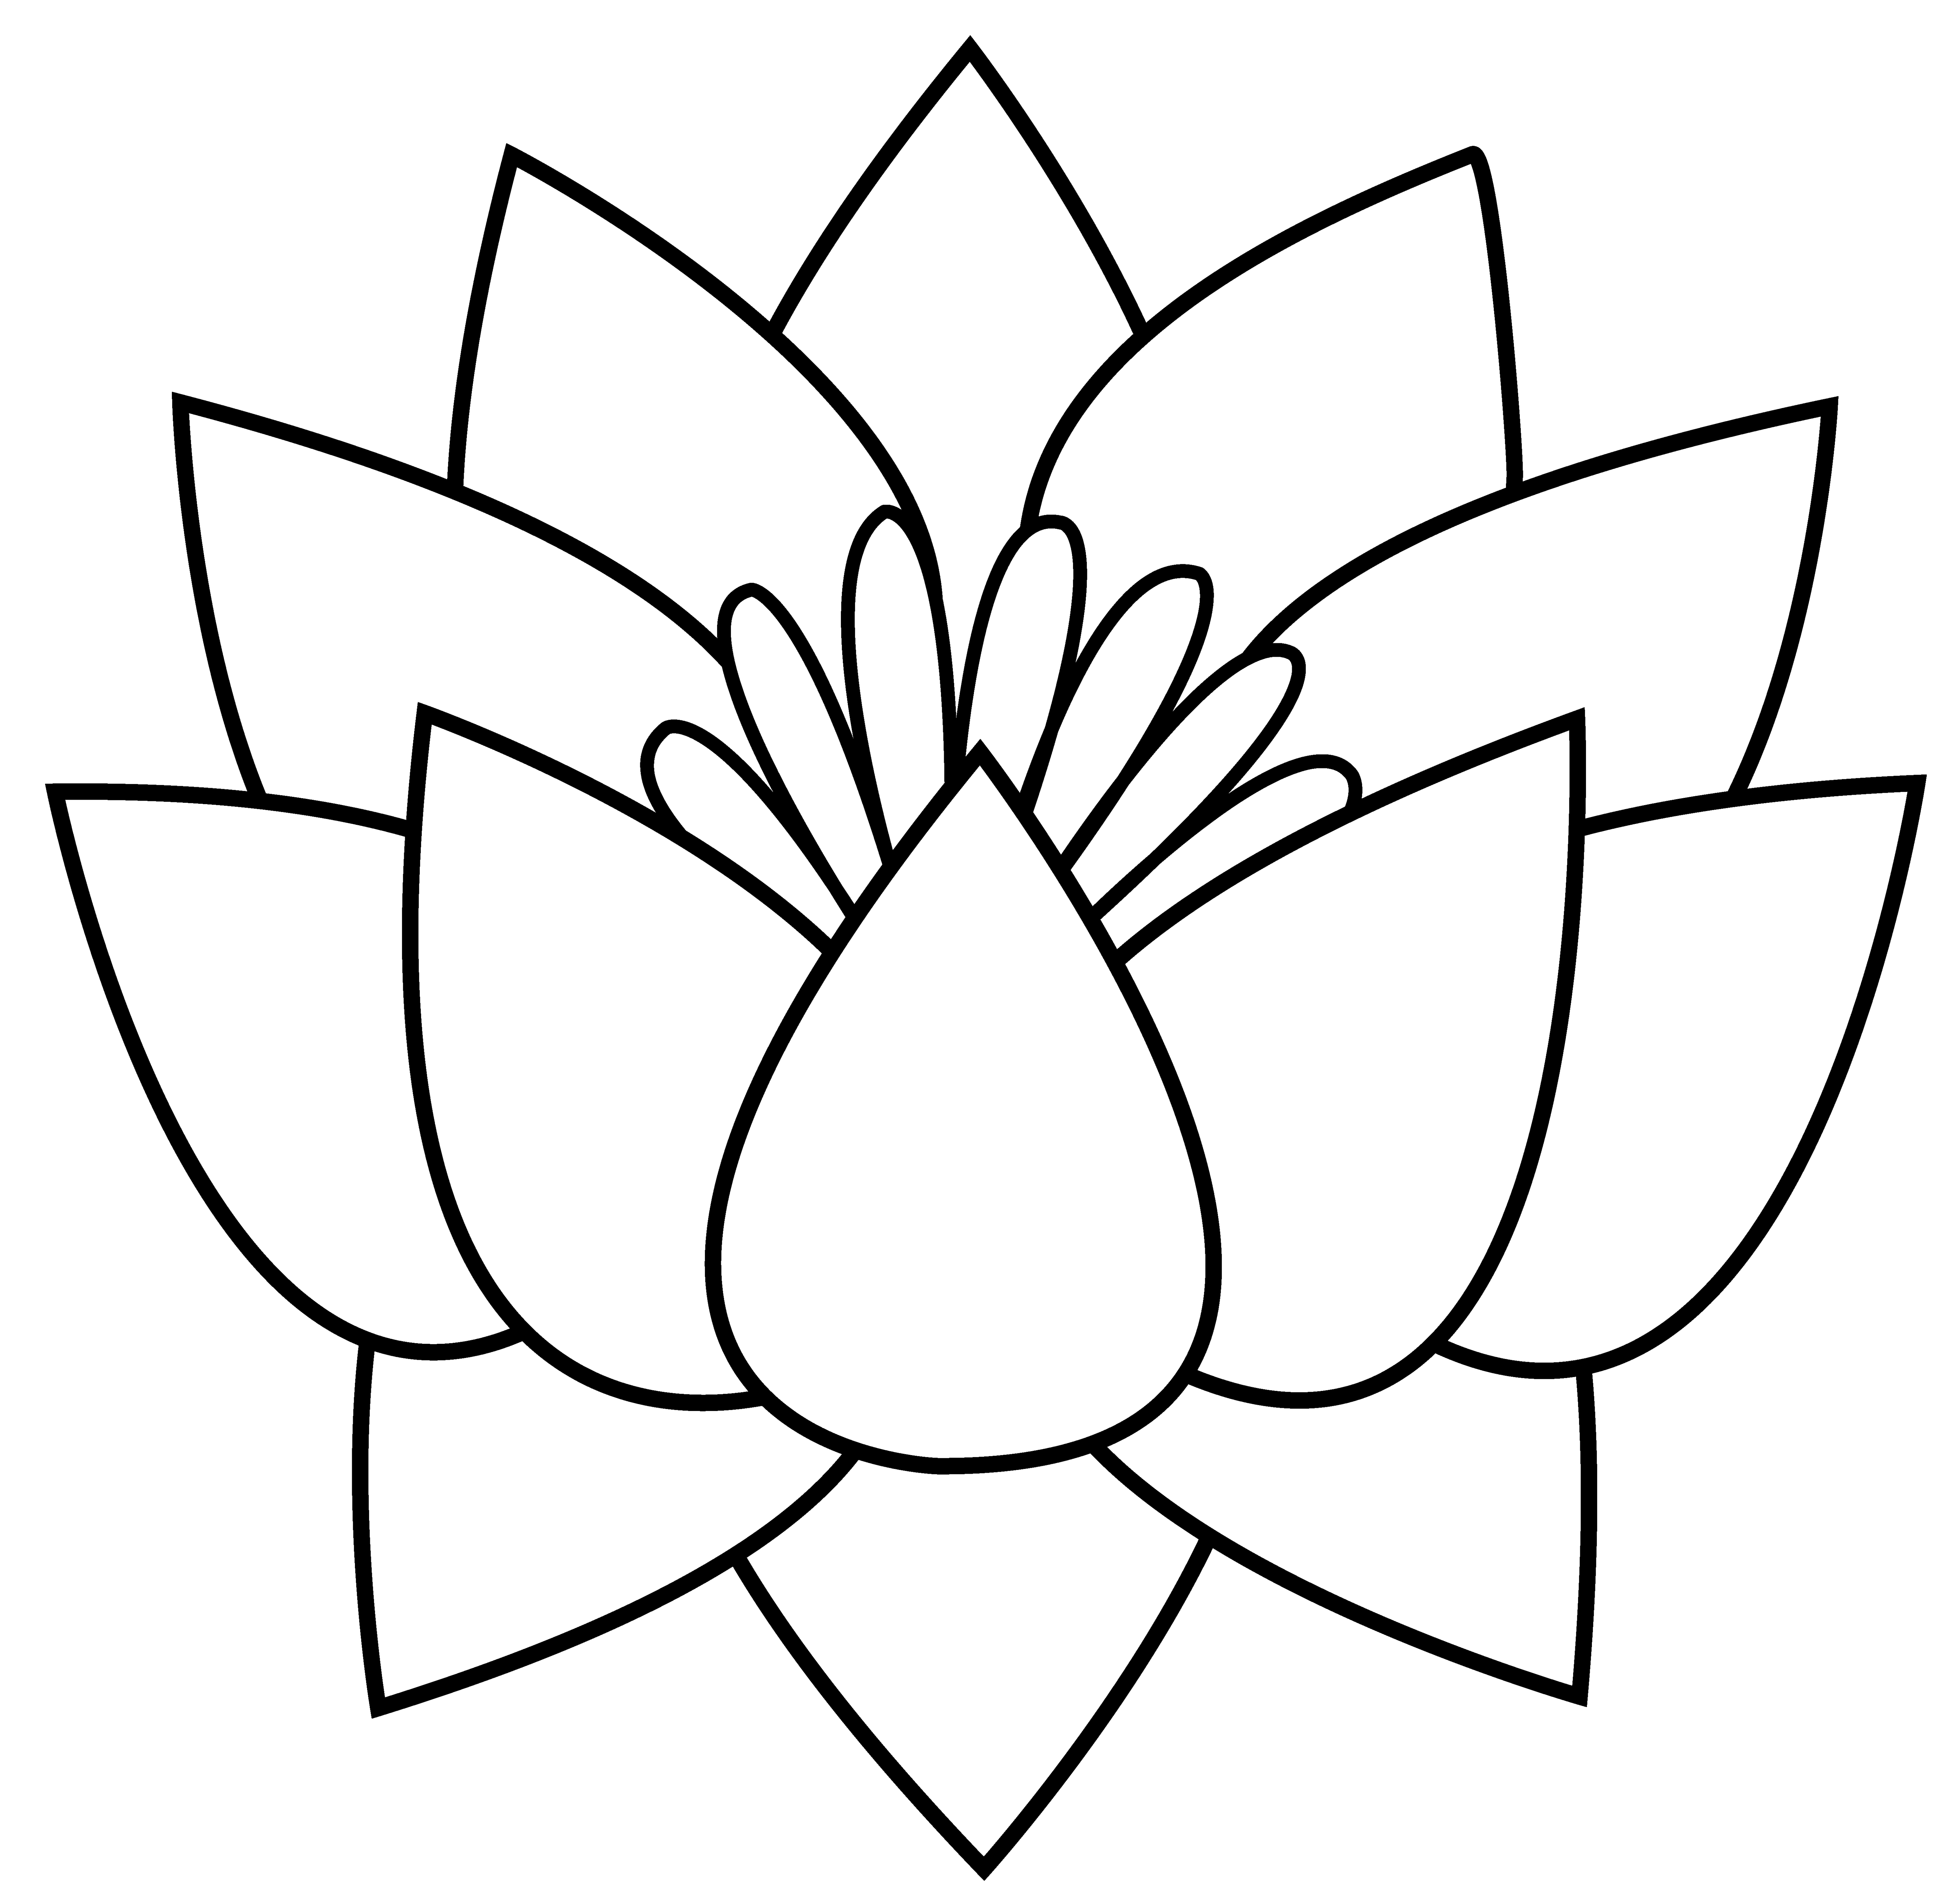 Lotus flower clipart free picture freeuse Black Background With Flowers Border Clip Art Of A And White Frames ... picture freeuse